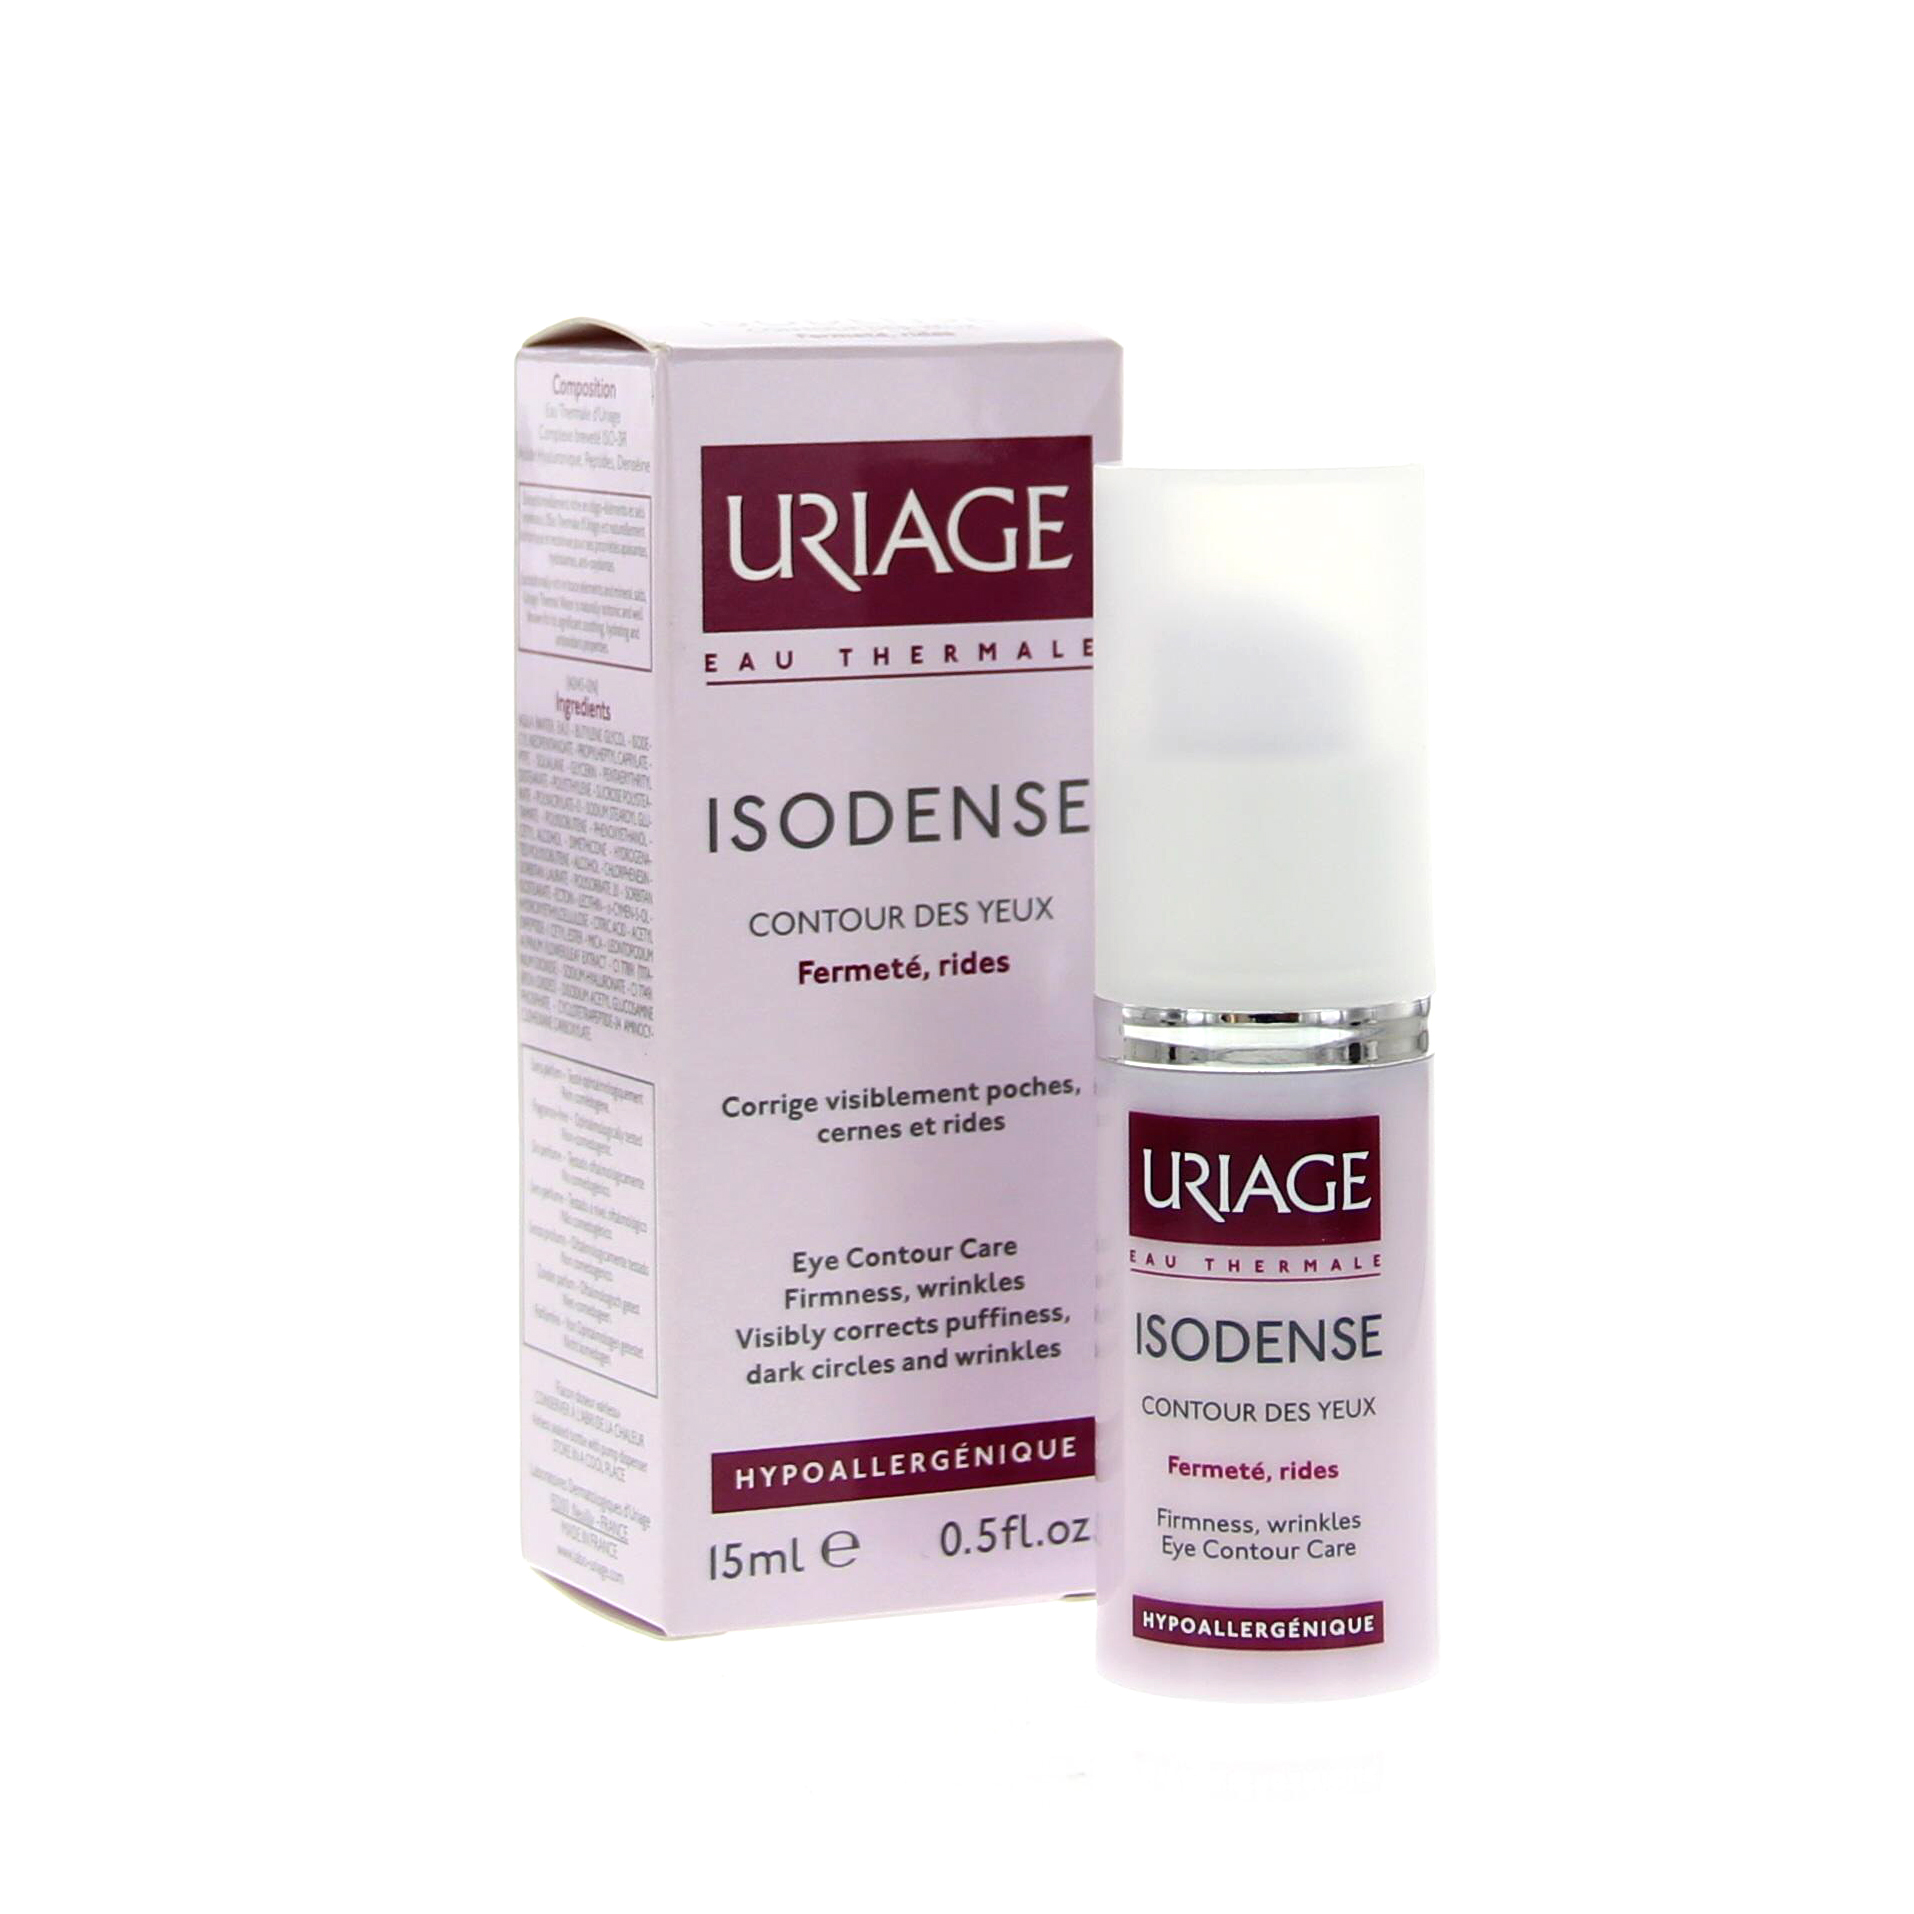 uriage isodence contour des yeux 15ml